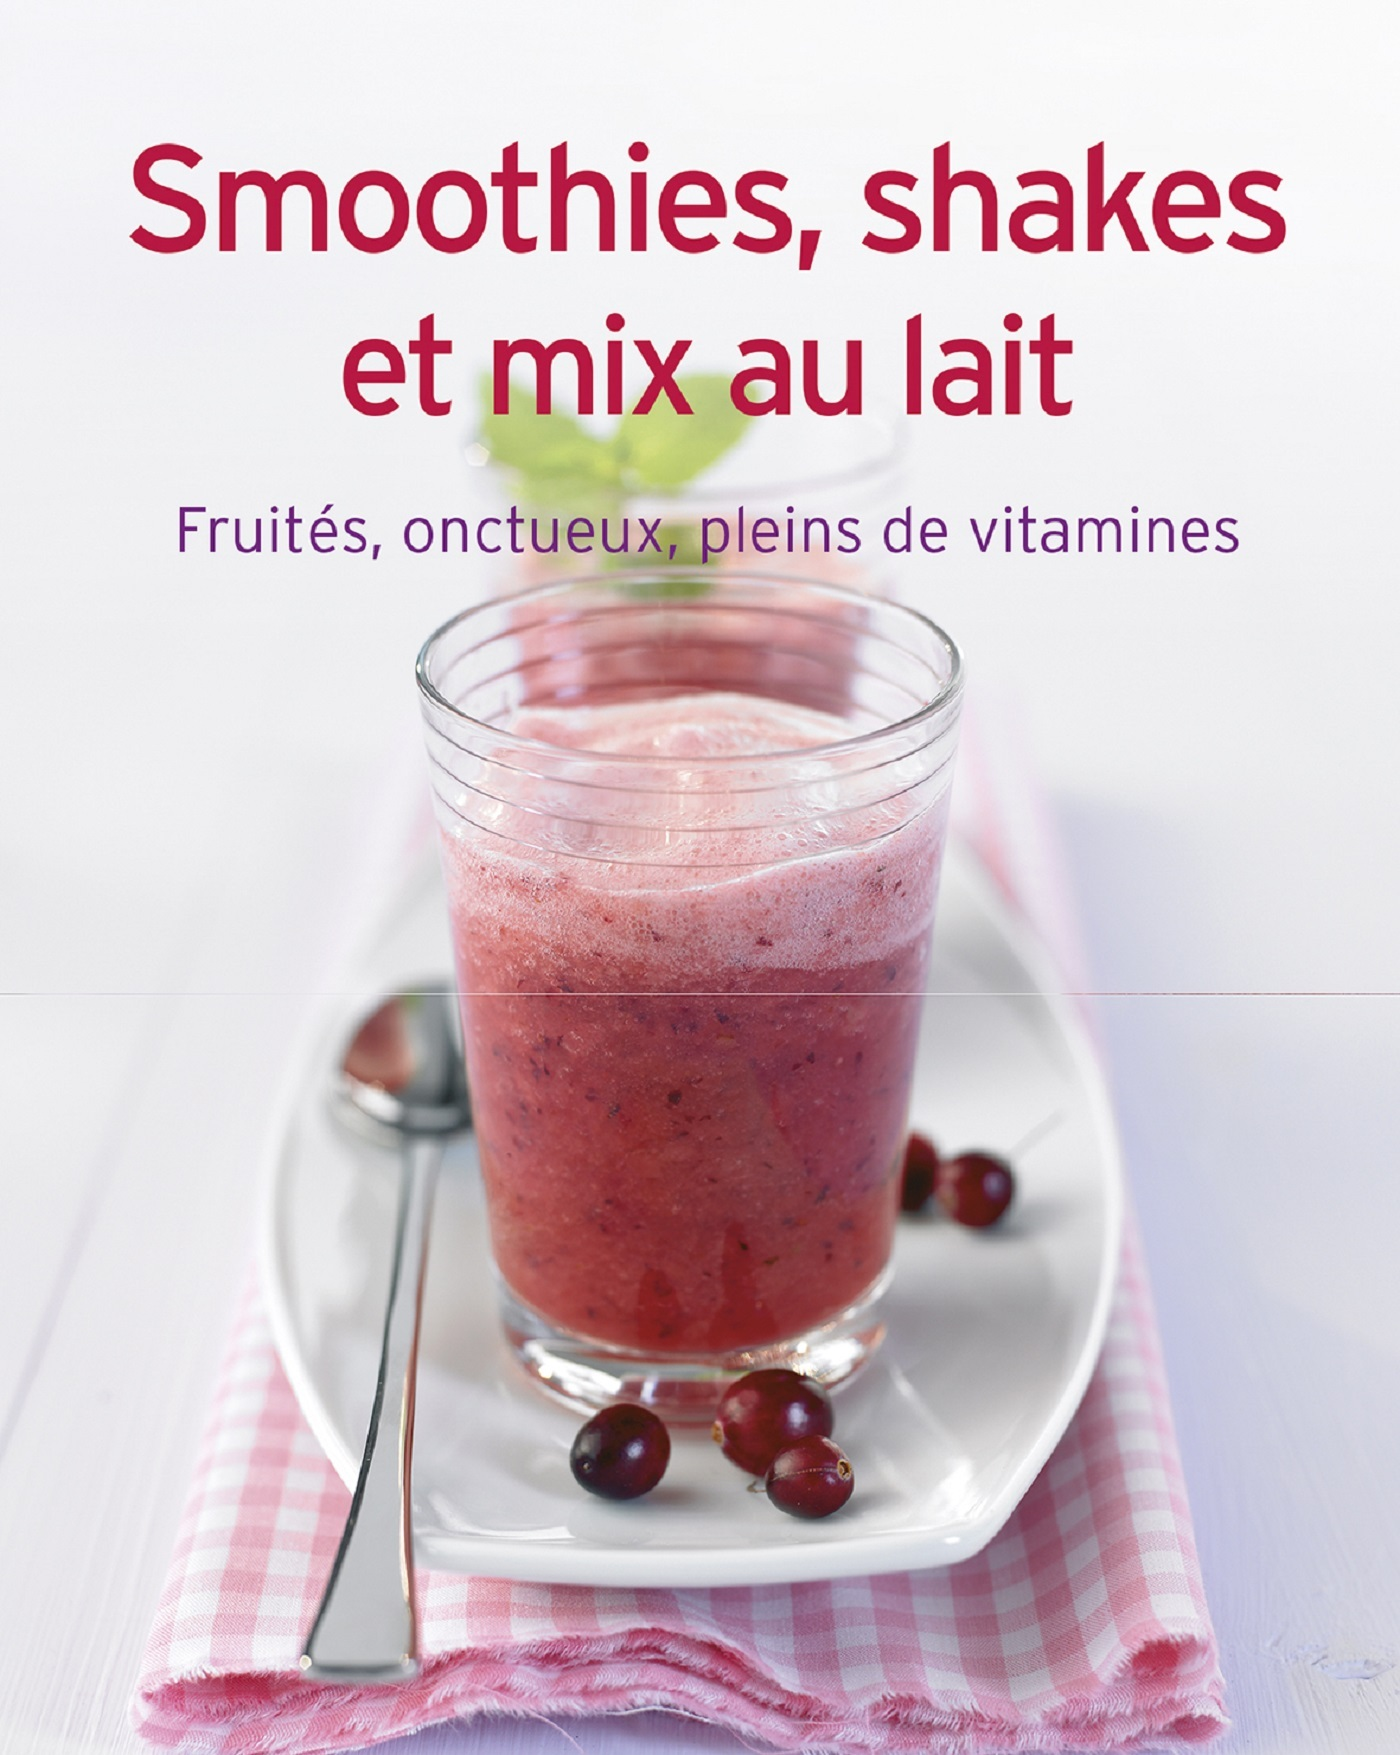 SMOOTHIES SHAKES ET MIX AU LAIT